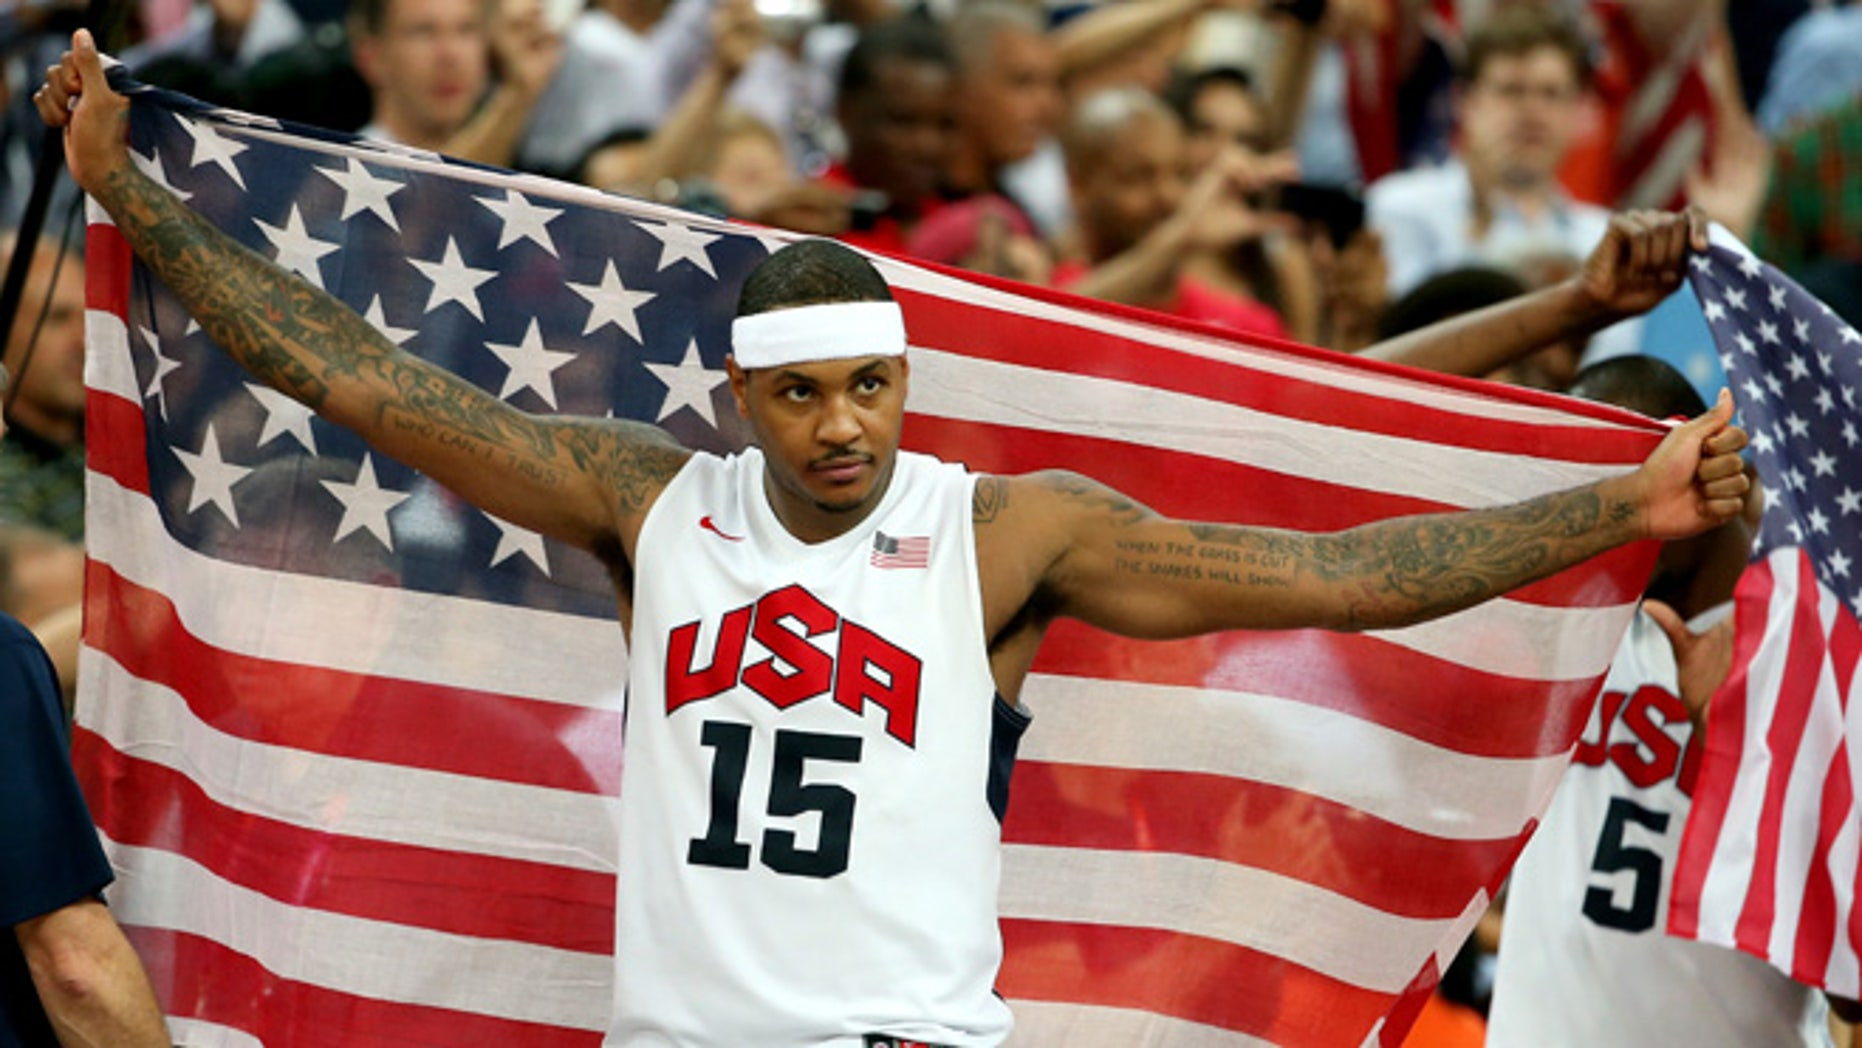 LONDON, ENGLAND - AUGUST 12: Carmelo Anthony #15 of the United States celebrates winning the Men's Basketball gold medal game between the United States and Spain on Day 16 of the London 2012 Olympics Games at North Greenwich Arena on August 12, 2012 in London, England. The United States won the match 107-100.  (Photo by Christian Petersen/Getty Images)